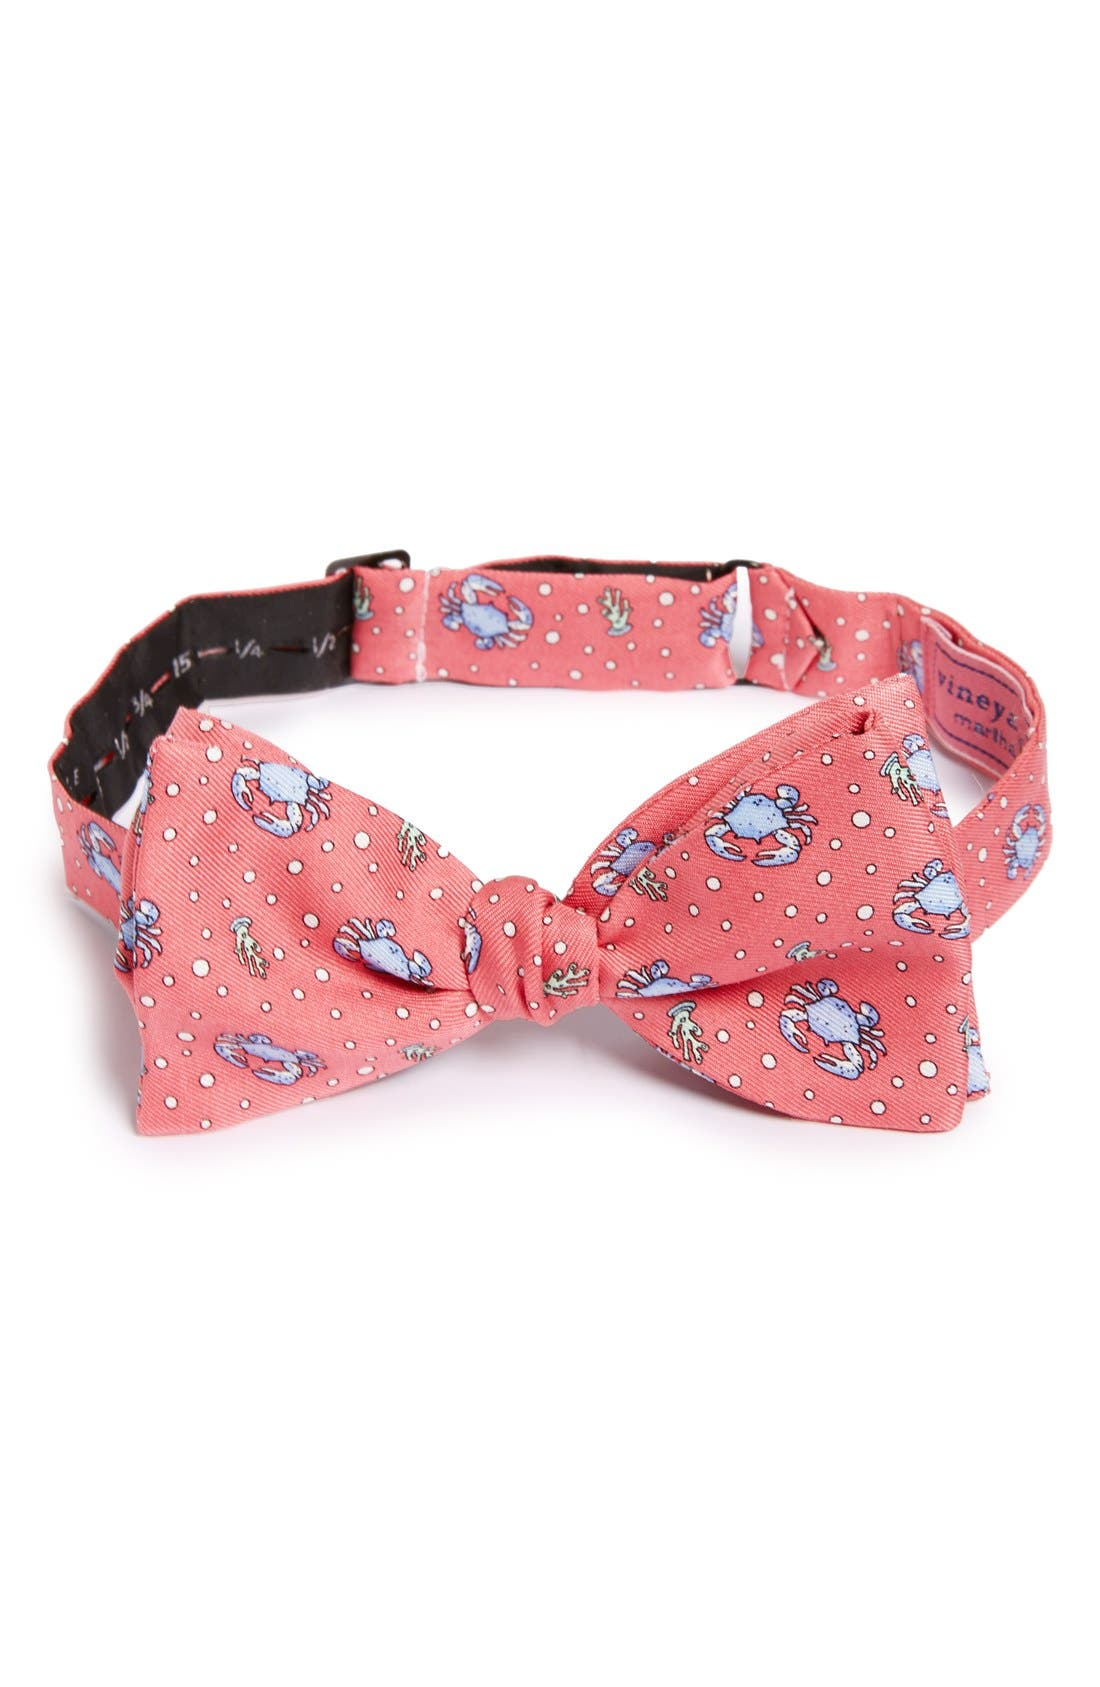 Vineyard Vines 'Crab' Silk Bow Tie